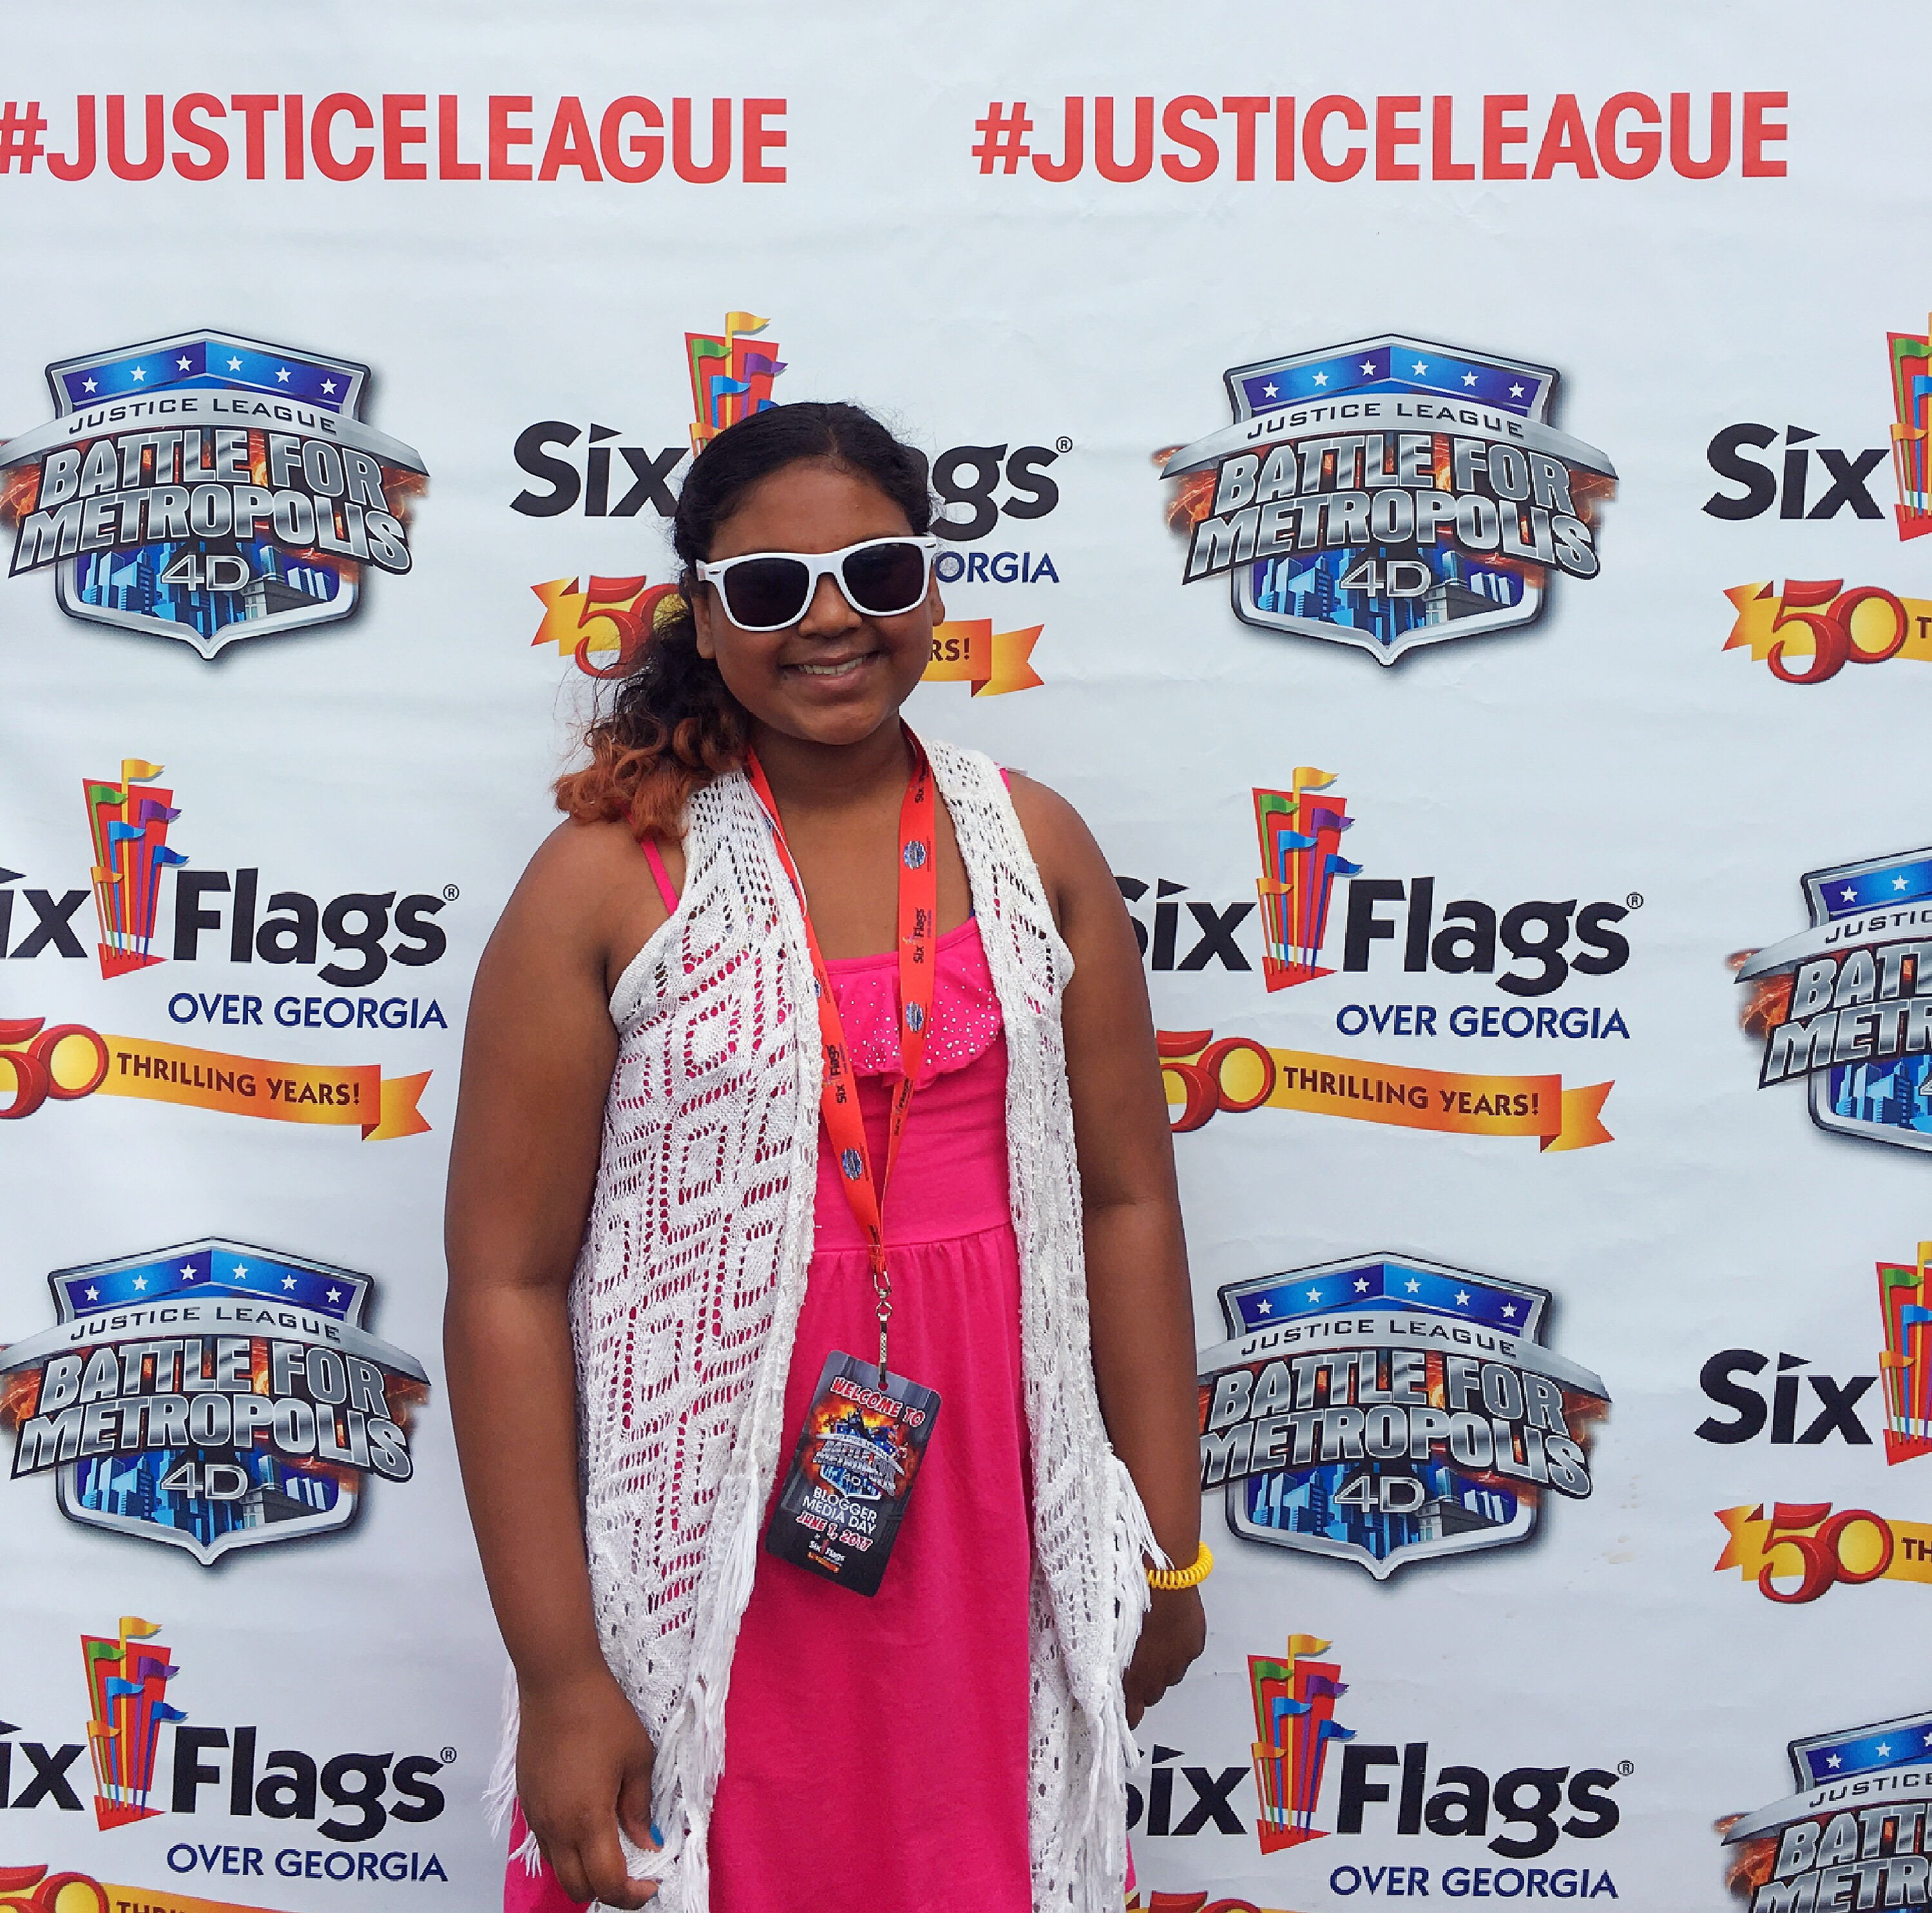 DC Comics Justice League Battle for Metropolis Six Flags over Georgia touristmom.com